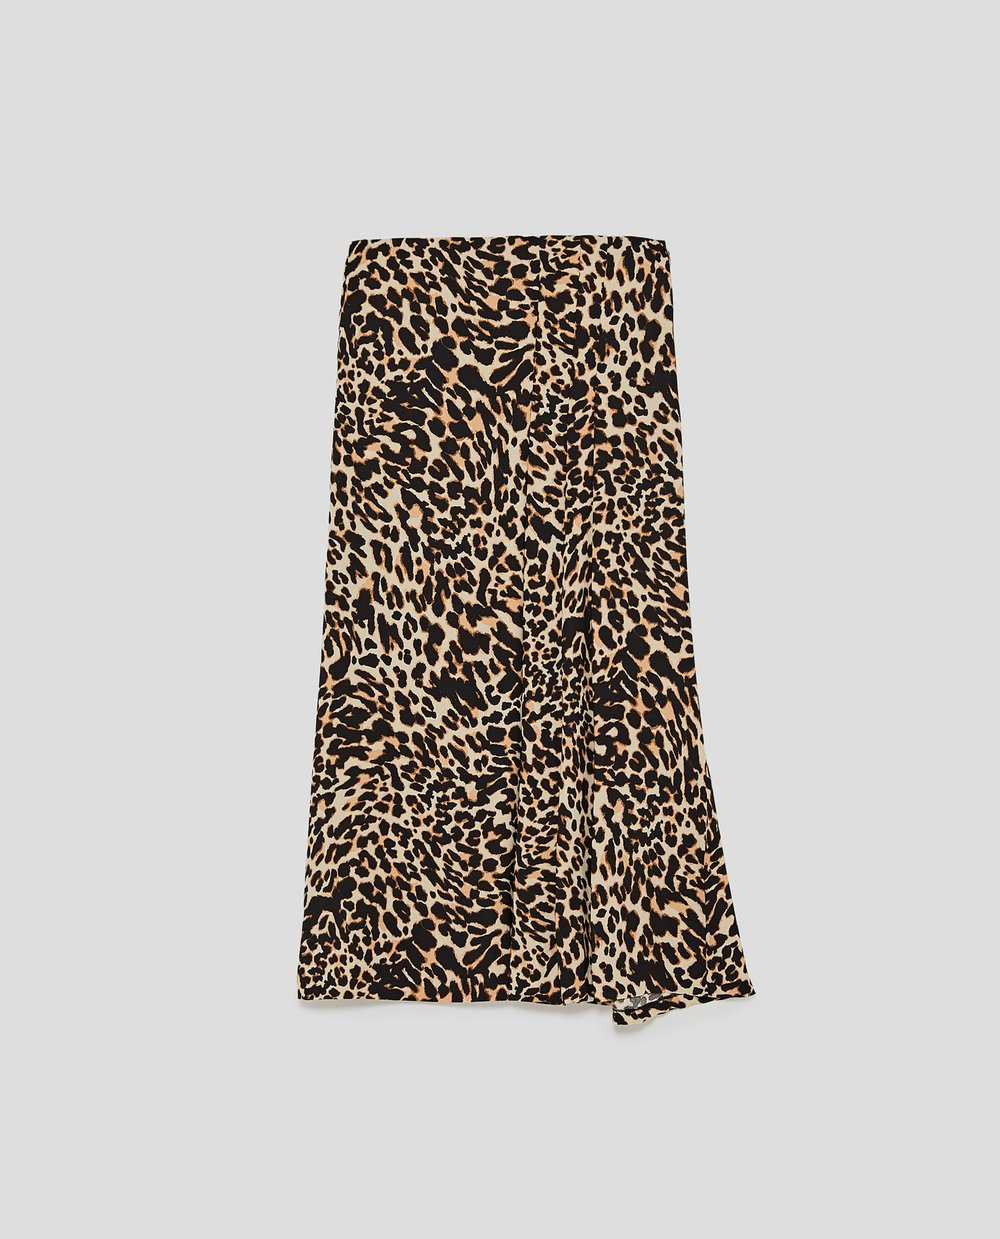 https://www.zara.com/ca/en/animal-print-midi-skirt-p02010601.html?v1=5436026#selectedColor=707&origin=shopcart